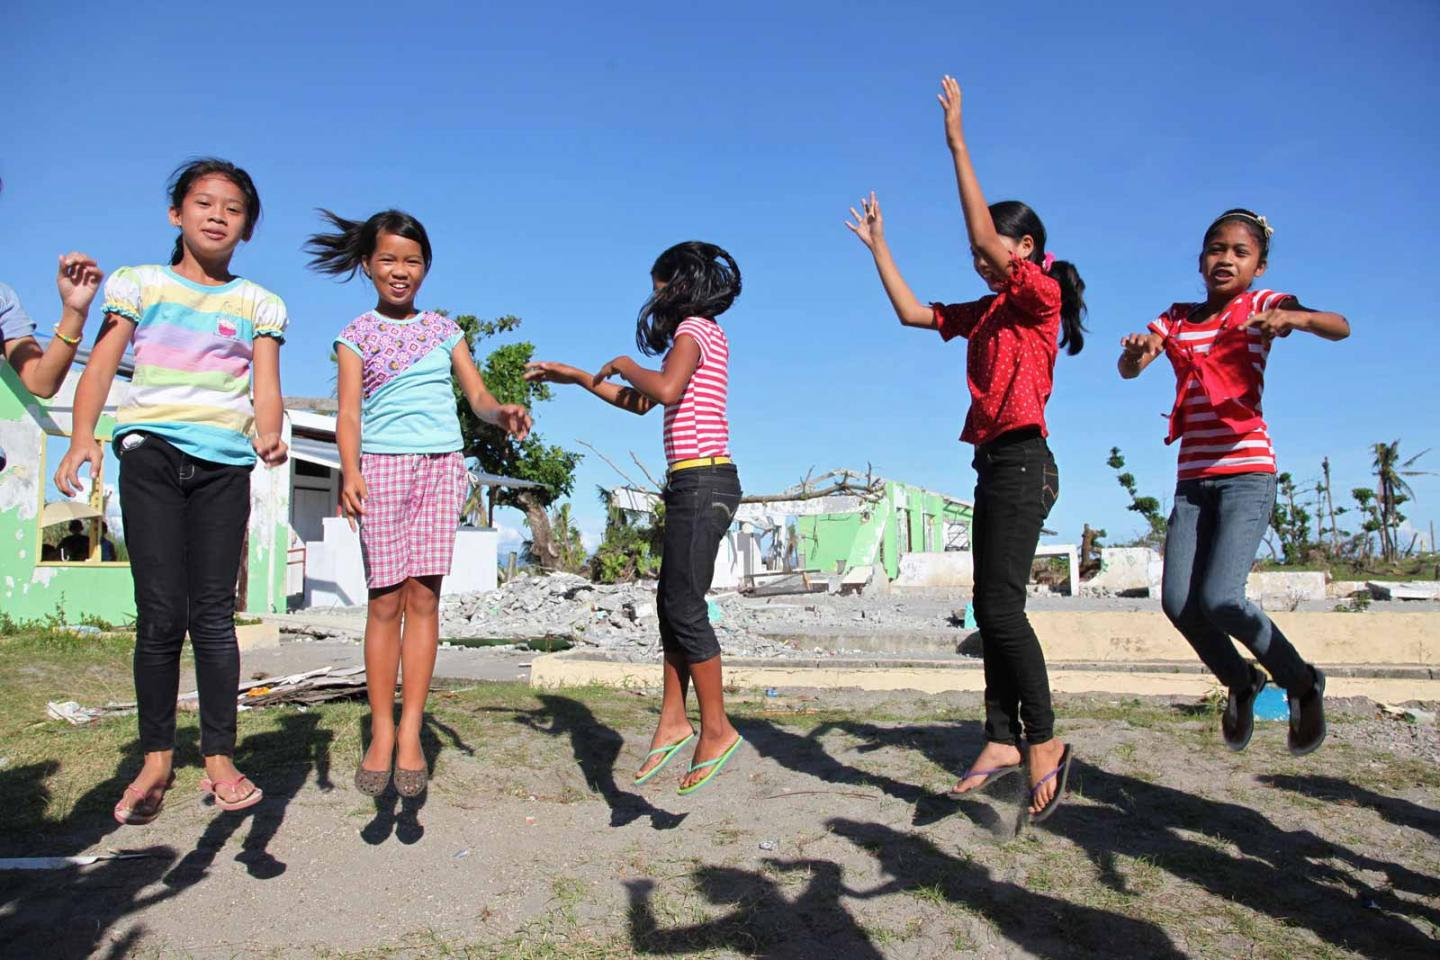 girls jumping together in the Philippines